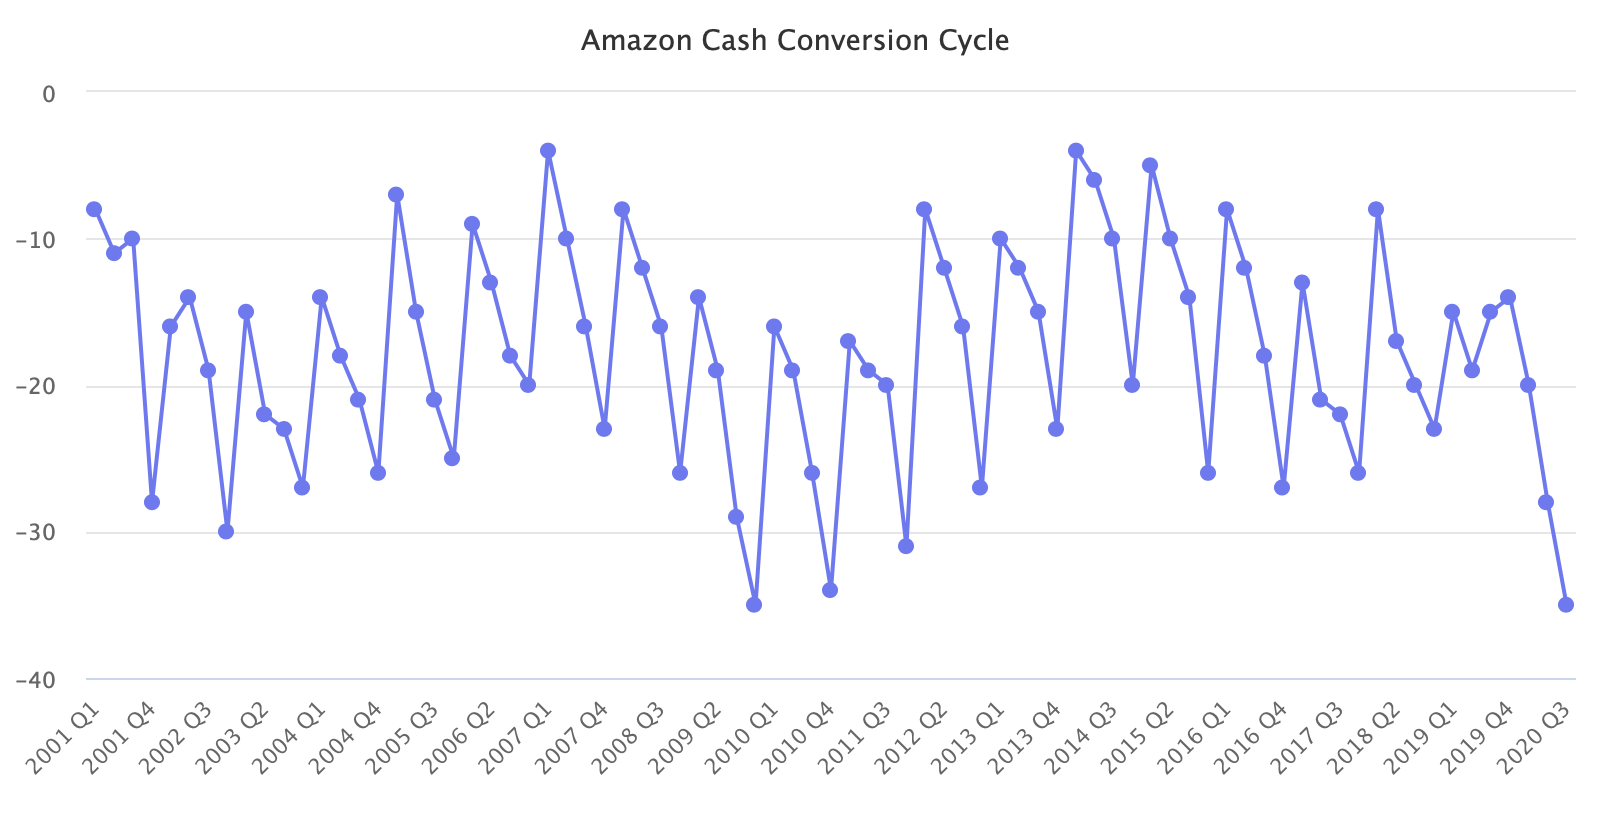 Amazon Cash Conversion Cycle